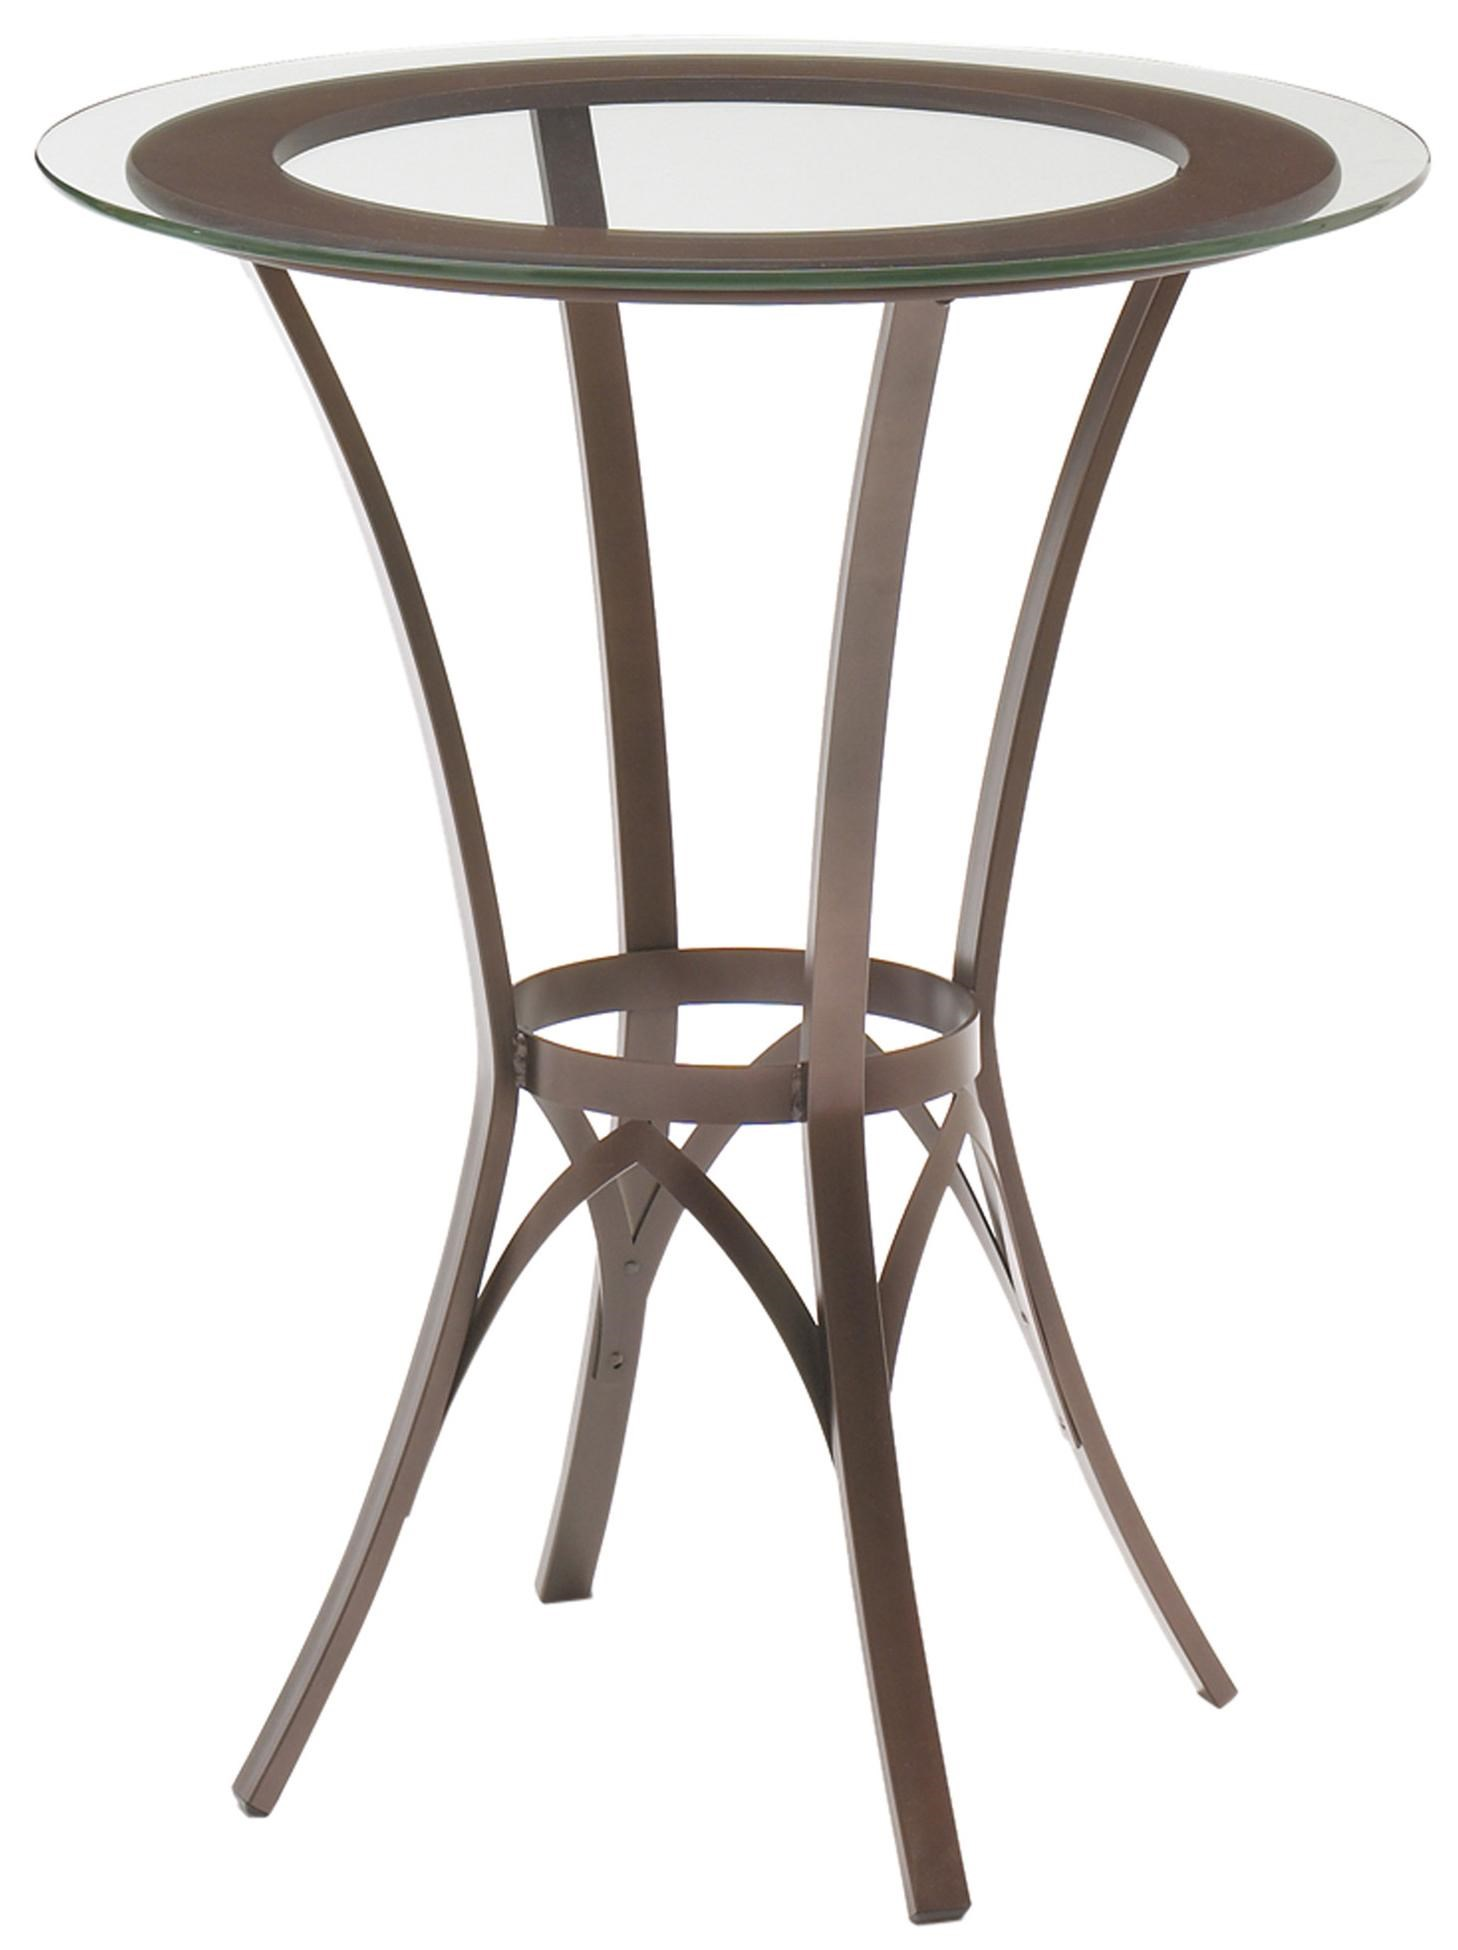 Gentil Kai Dinette Round Bar Height Pub Table With Glass Top And Interlaced Metal  Base By 2257